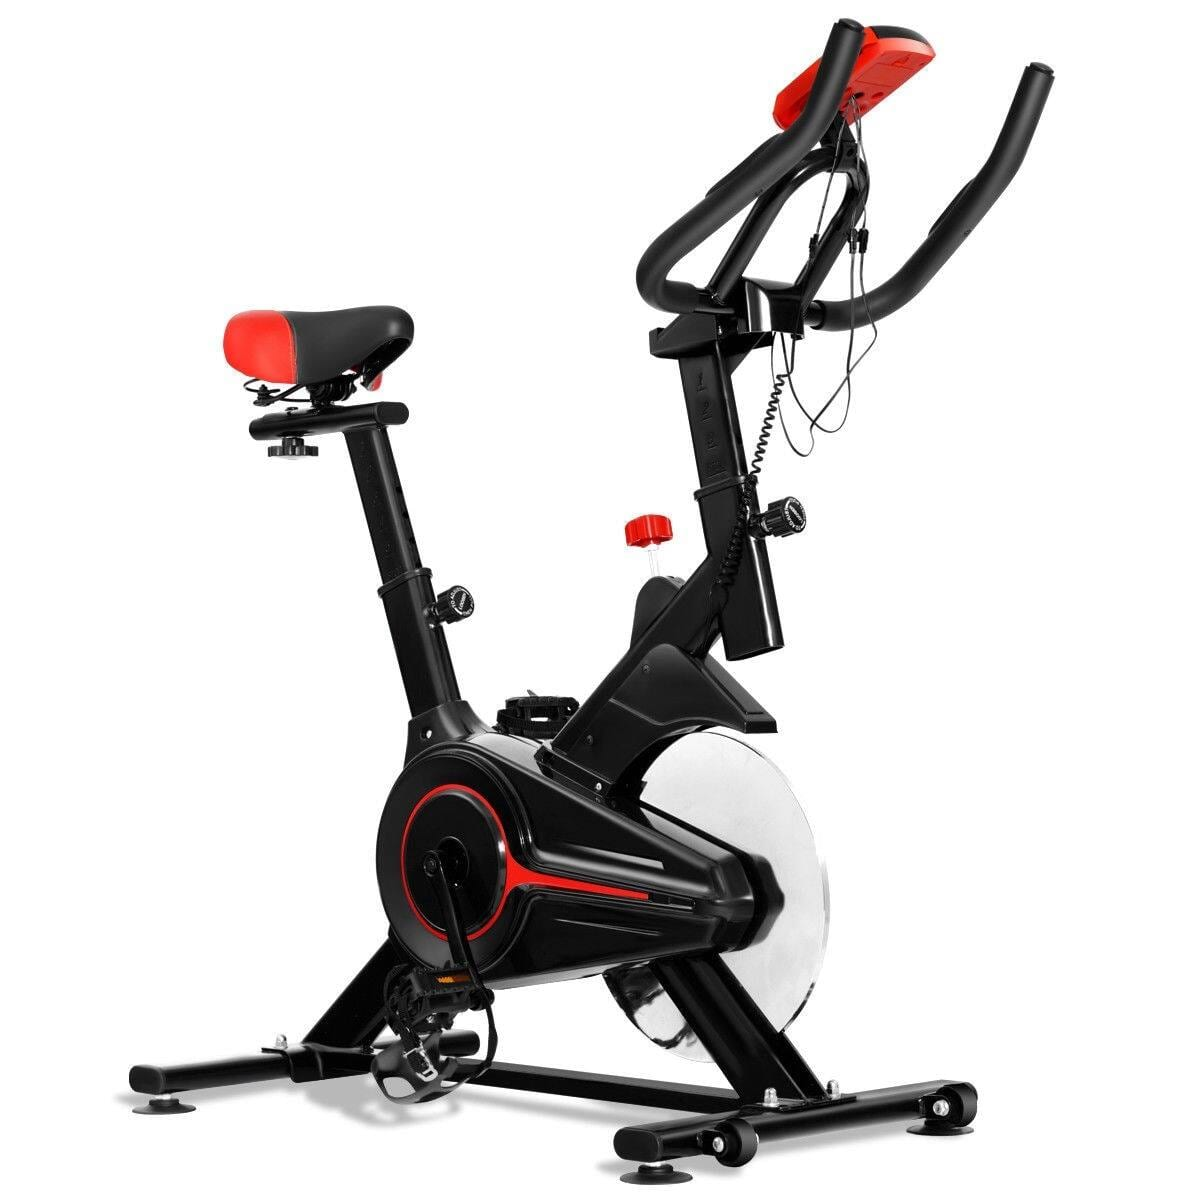 Costway Indoor Workout LCD Display Cycling Exercise Fitness Cardio Bike - $166.95 + Free Shipping